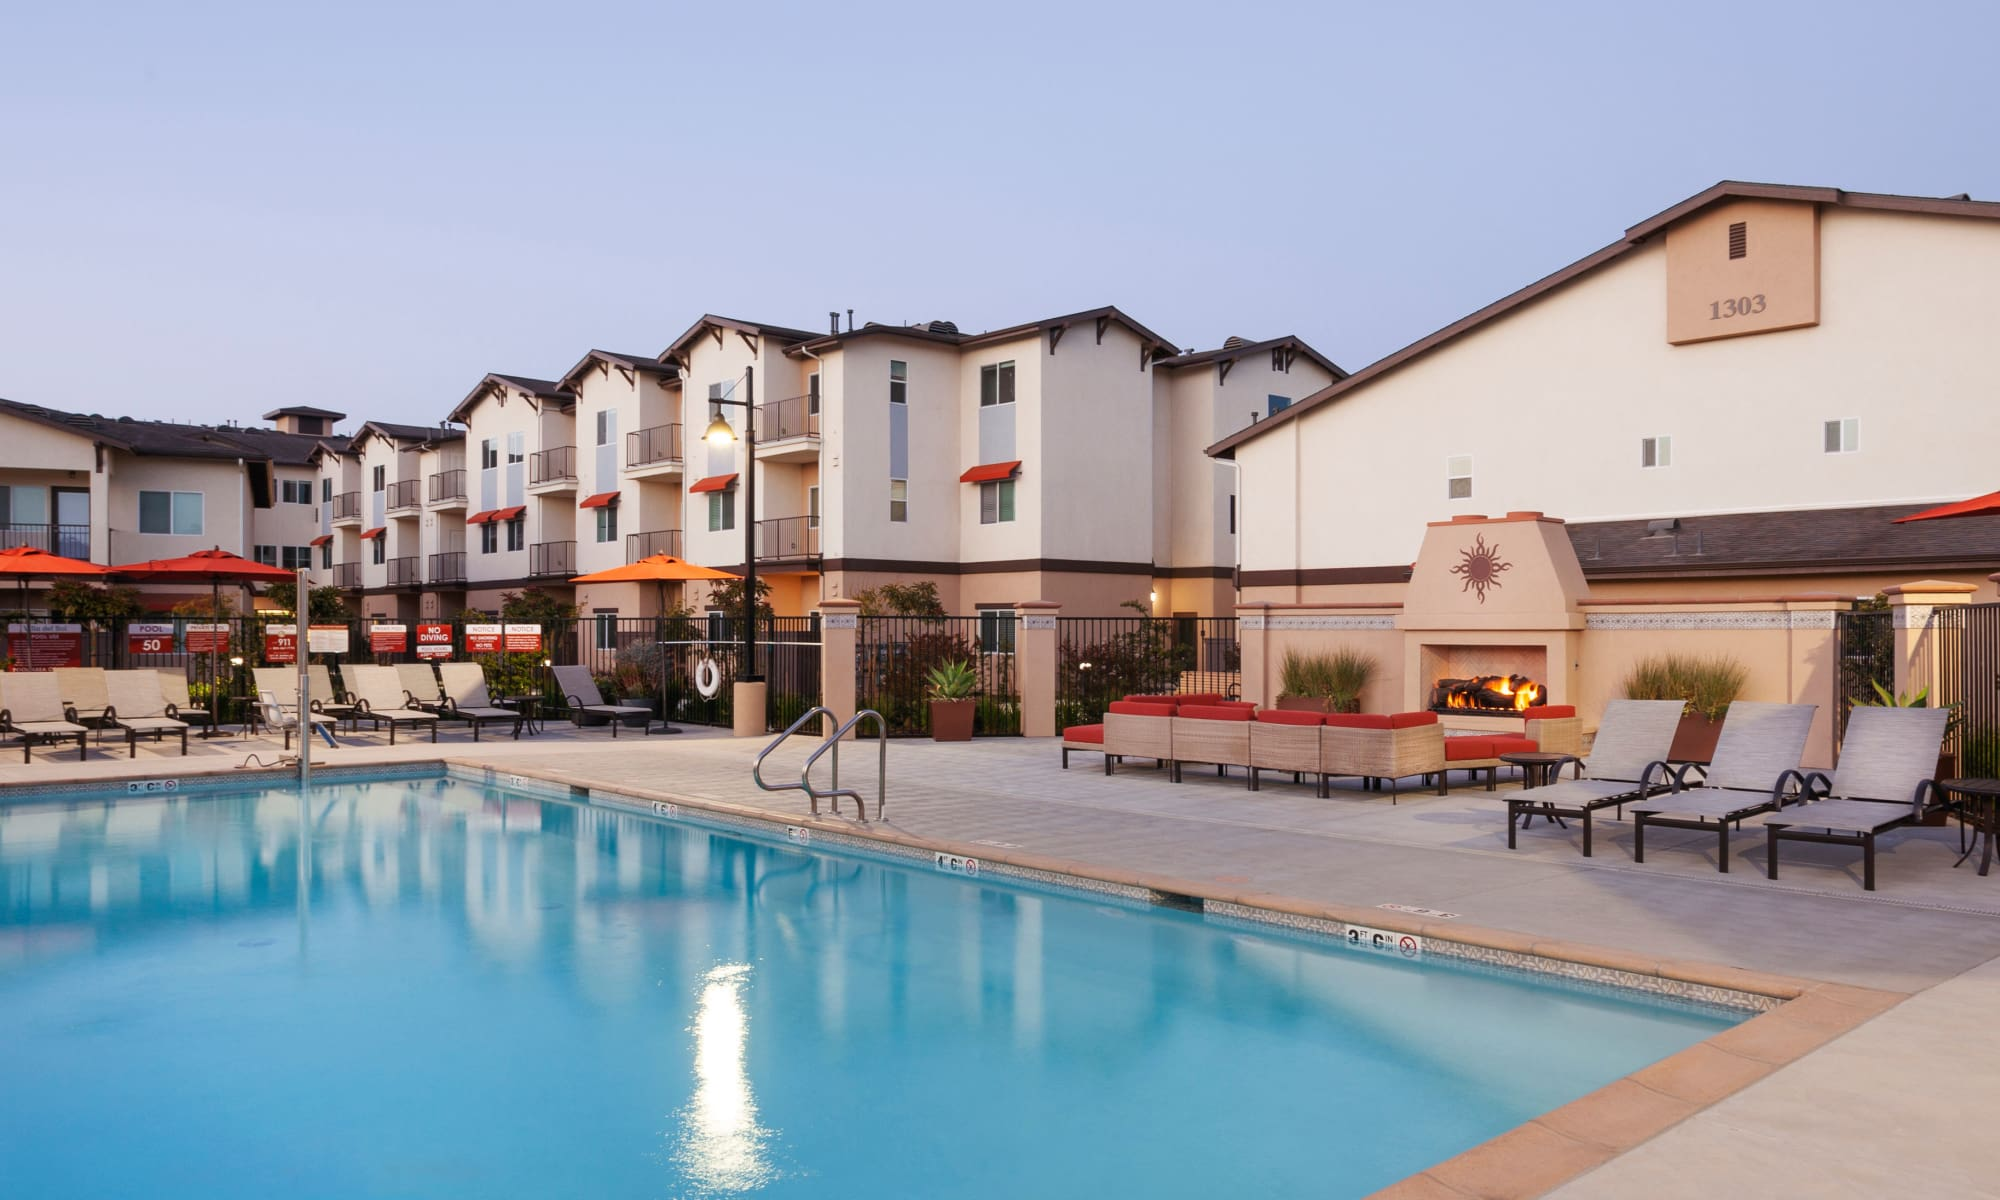 Welcome to our senior apartments in Santa Maria, CA